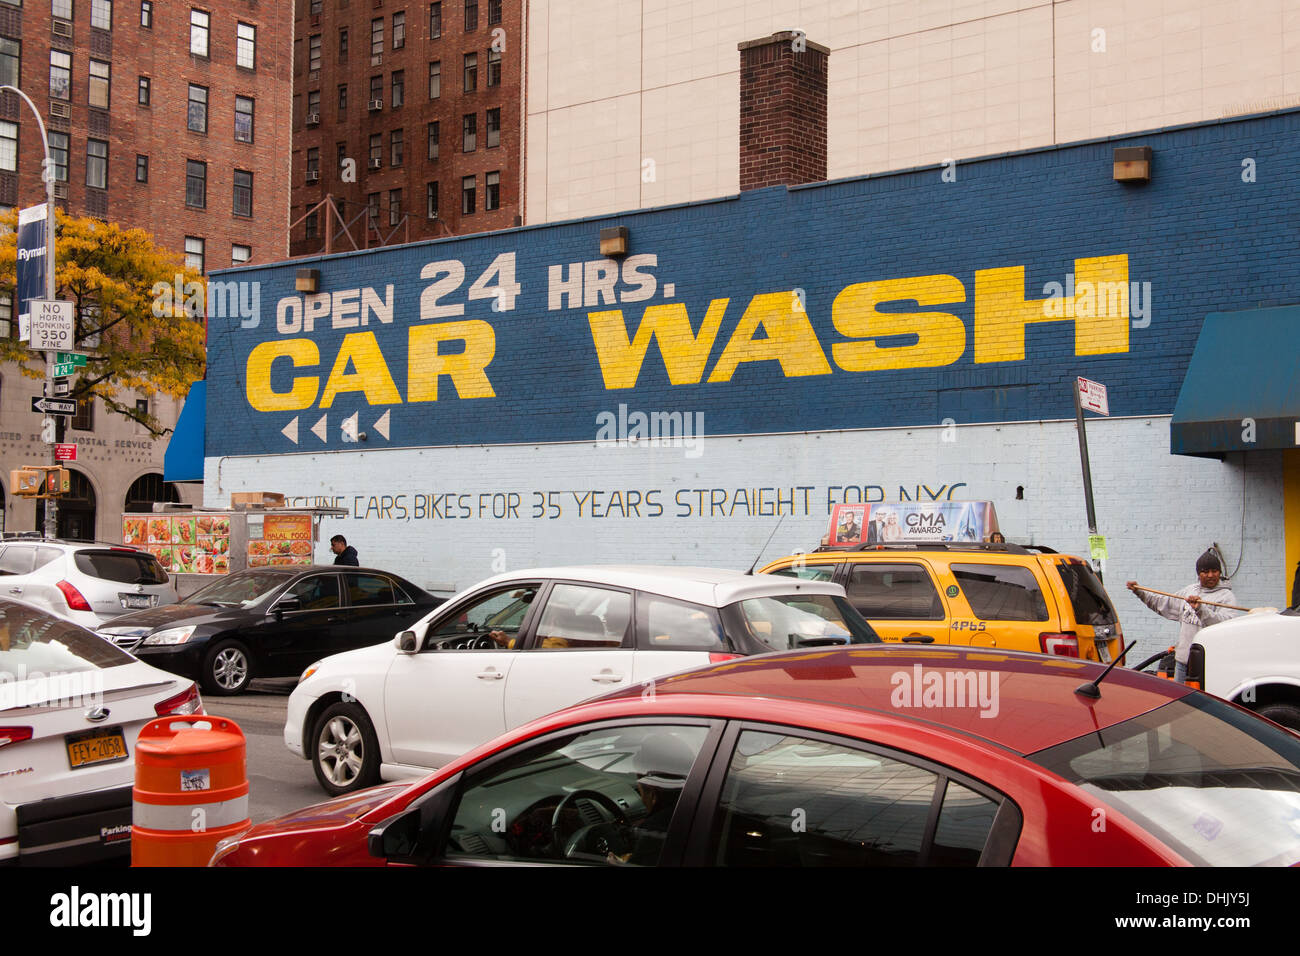 24 Hour car wash, Chelsea, New York City, United States of America. - Stock Image